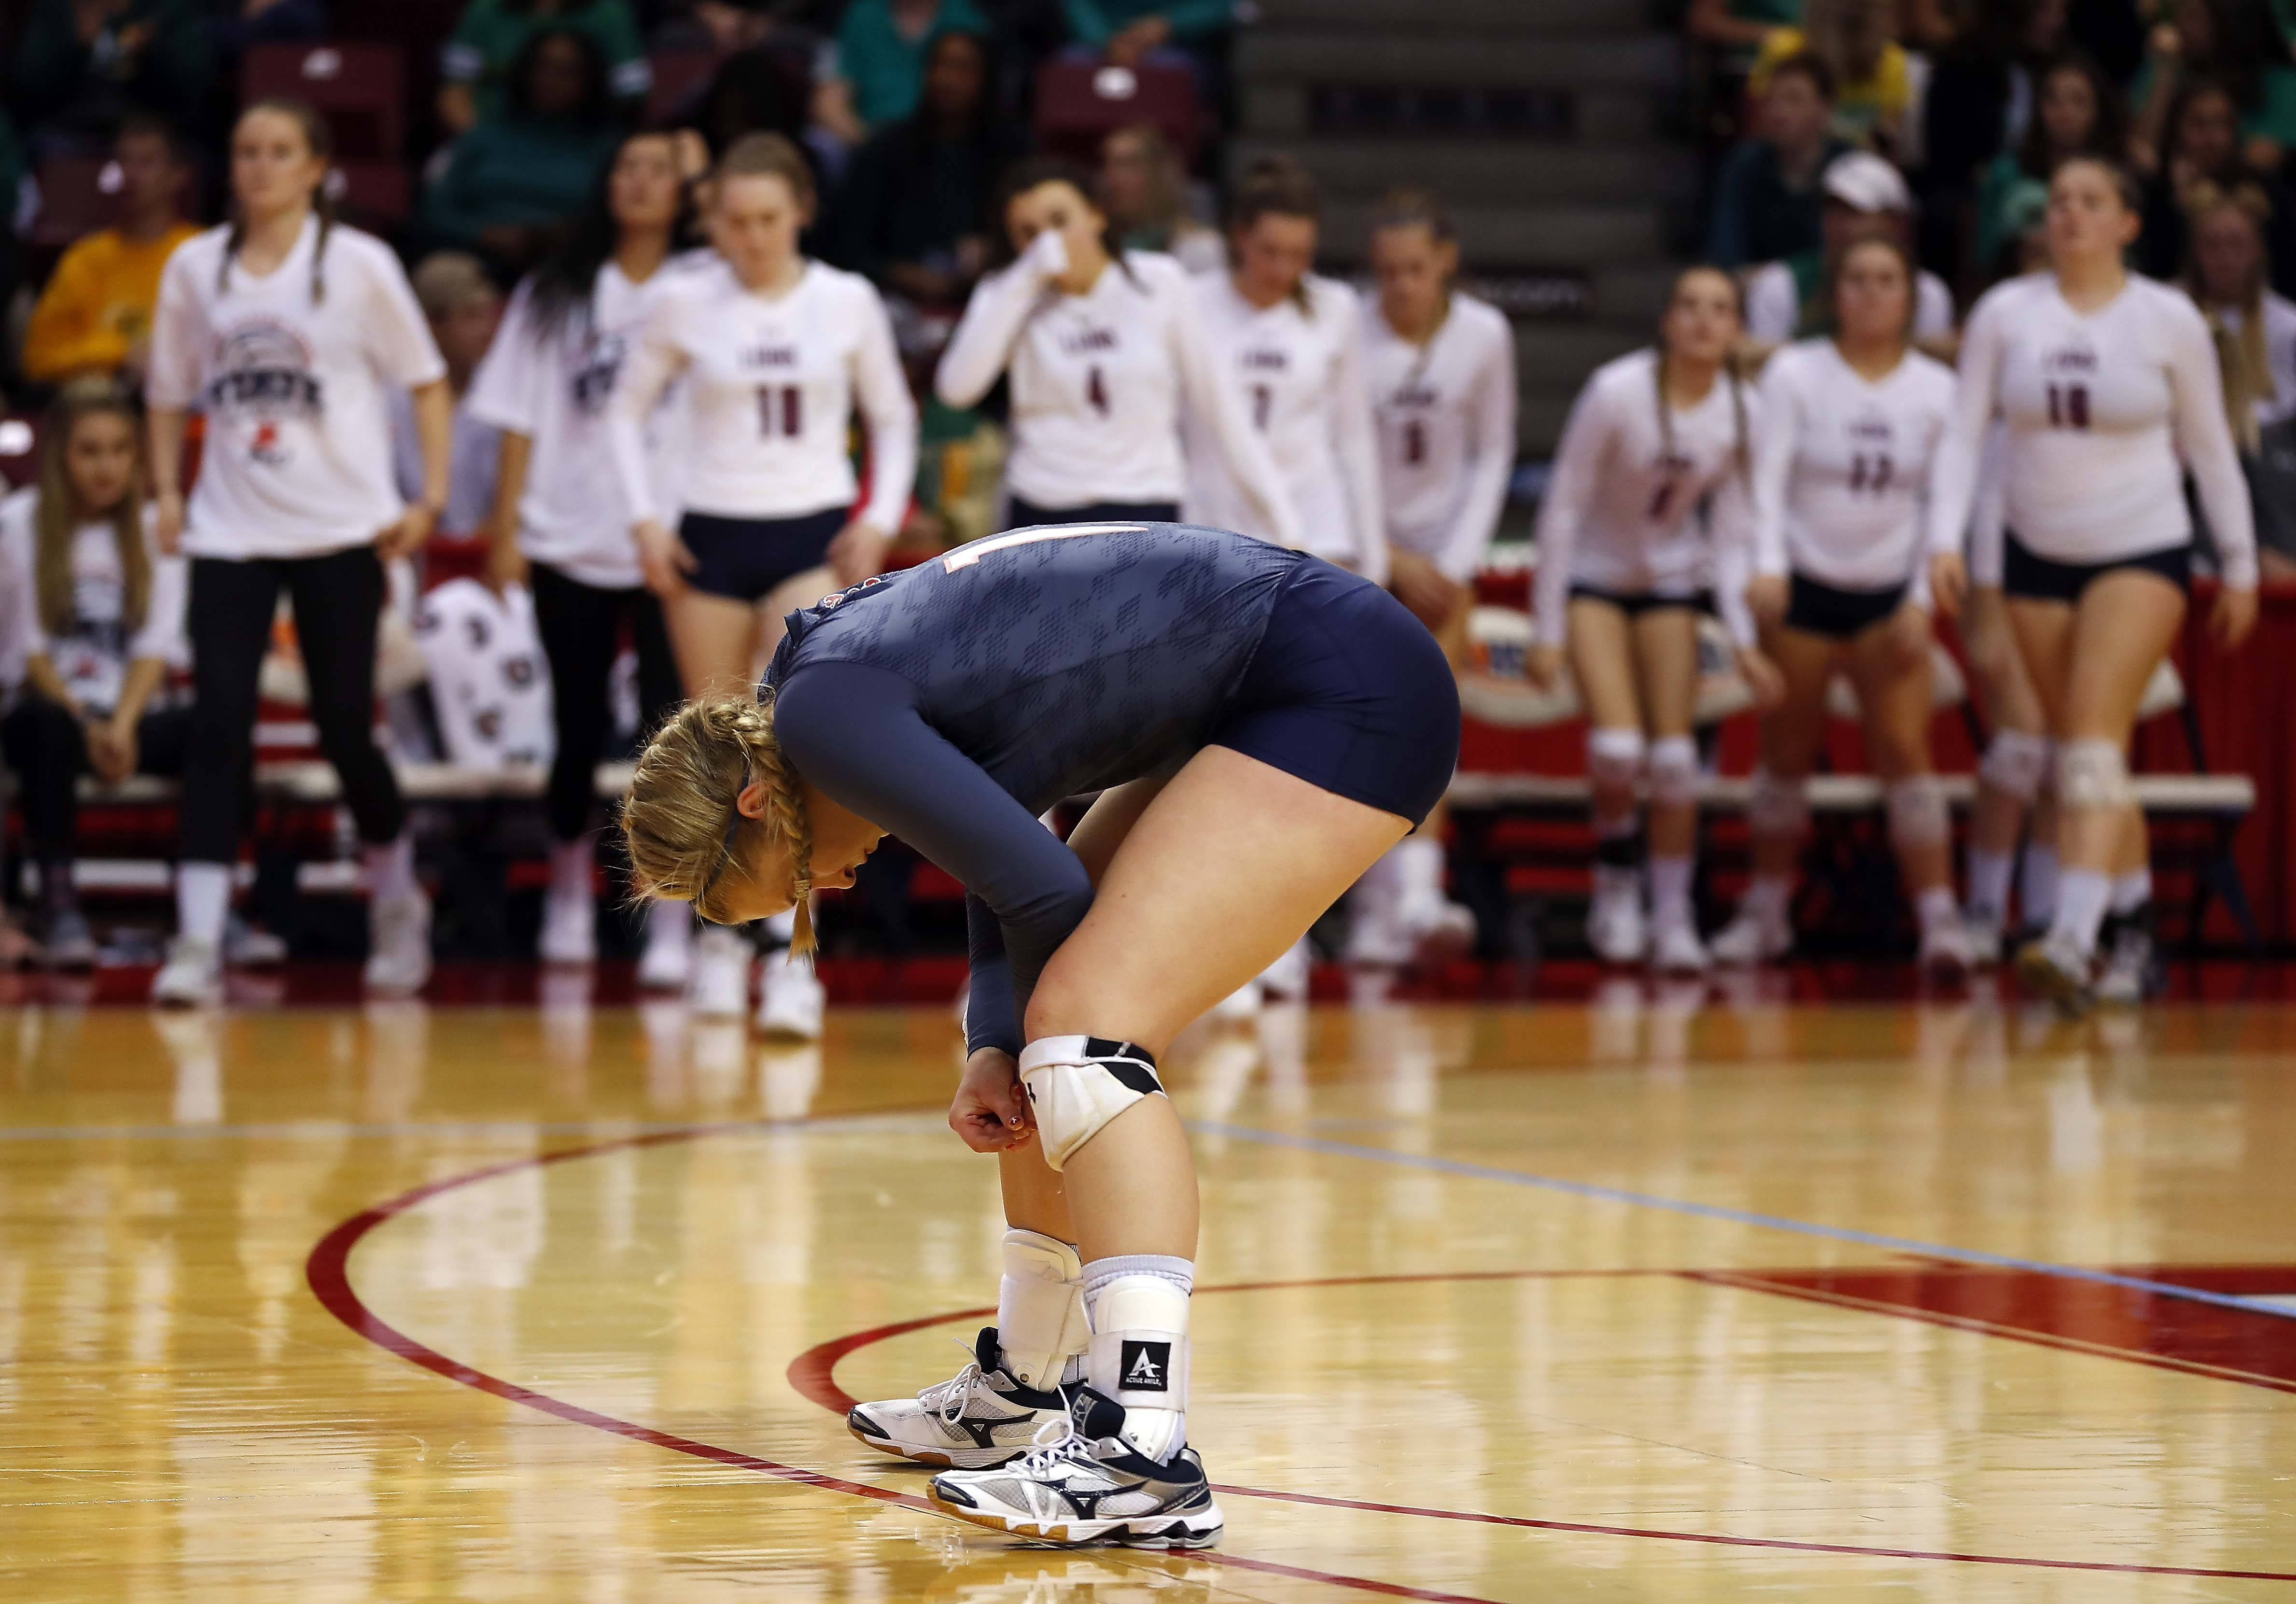 St. Viator's Carrie Leazer (15) reacts after their loss in the semifinals of the IHSA Class 3A state girls volleyball tournament at Redbird Arena in Normal.